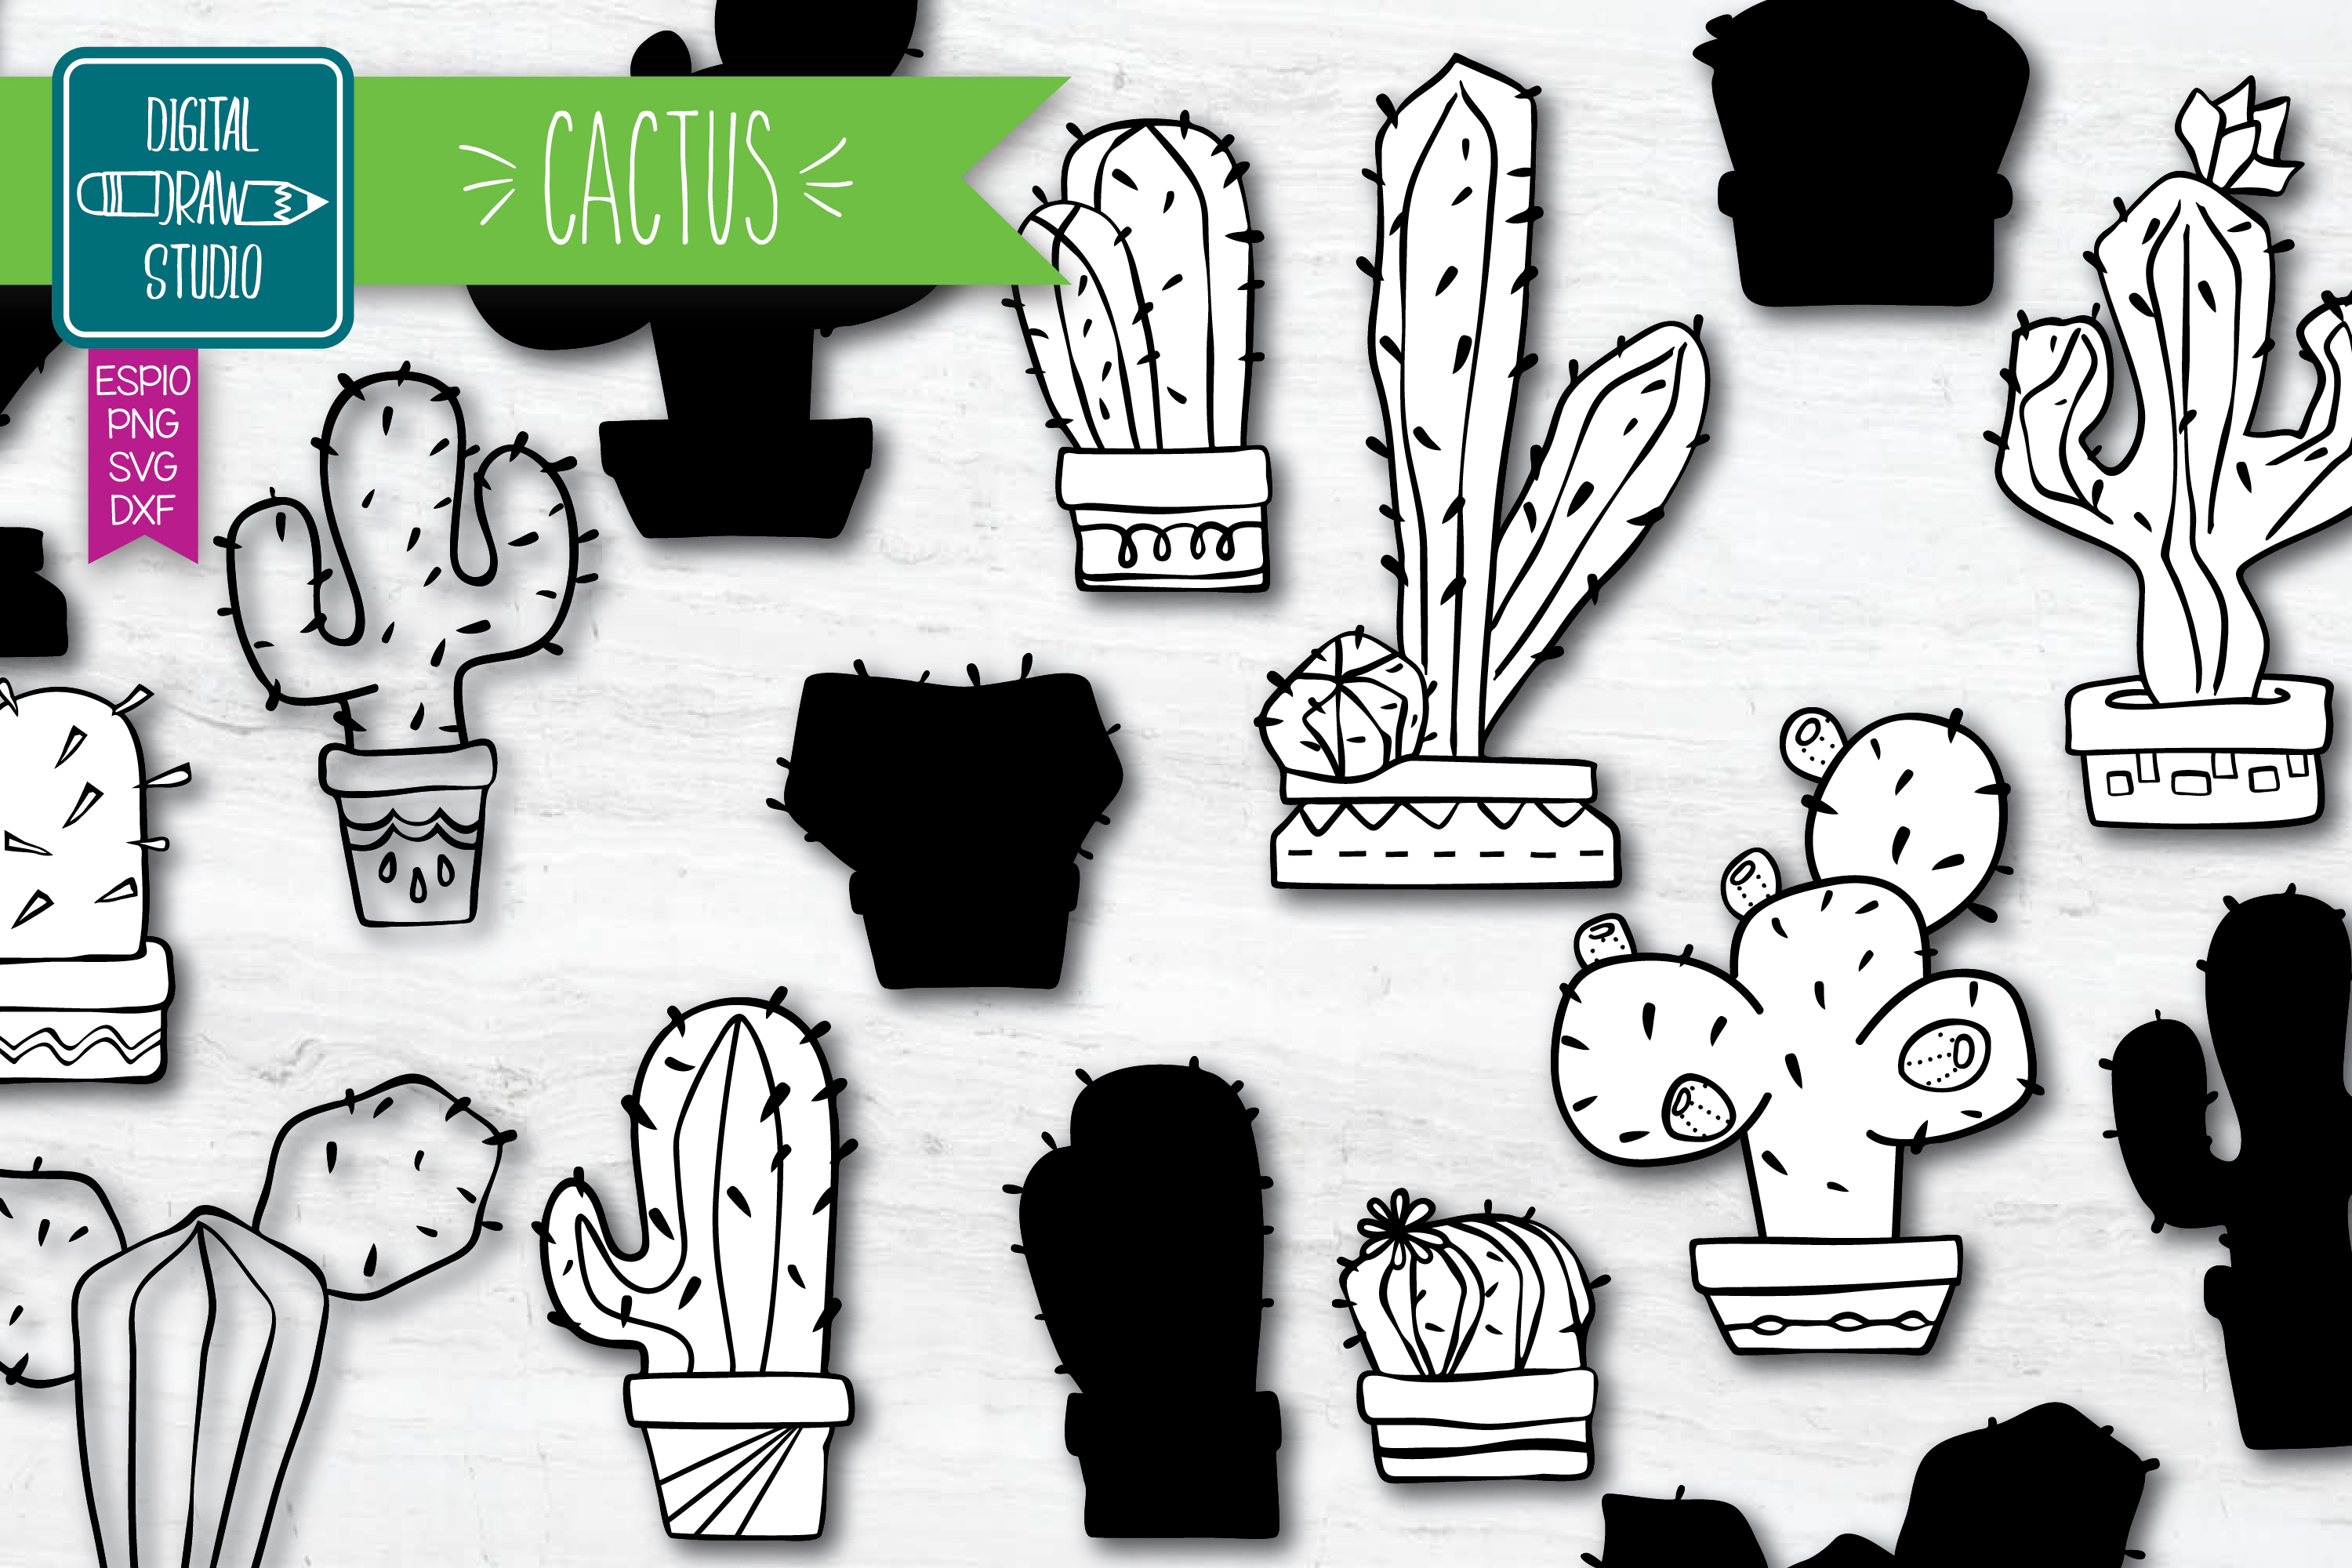 Download Free Hand Drawn Cactus House Plants In Pots Graphic By Carmela Giordano Creative Fabrica for Cricut Explore, Silhouette and other cutting machines.